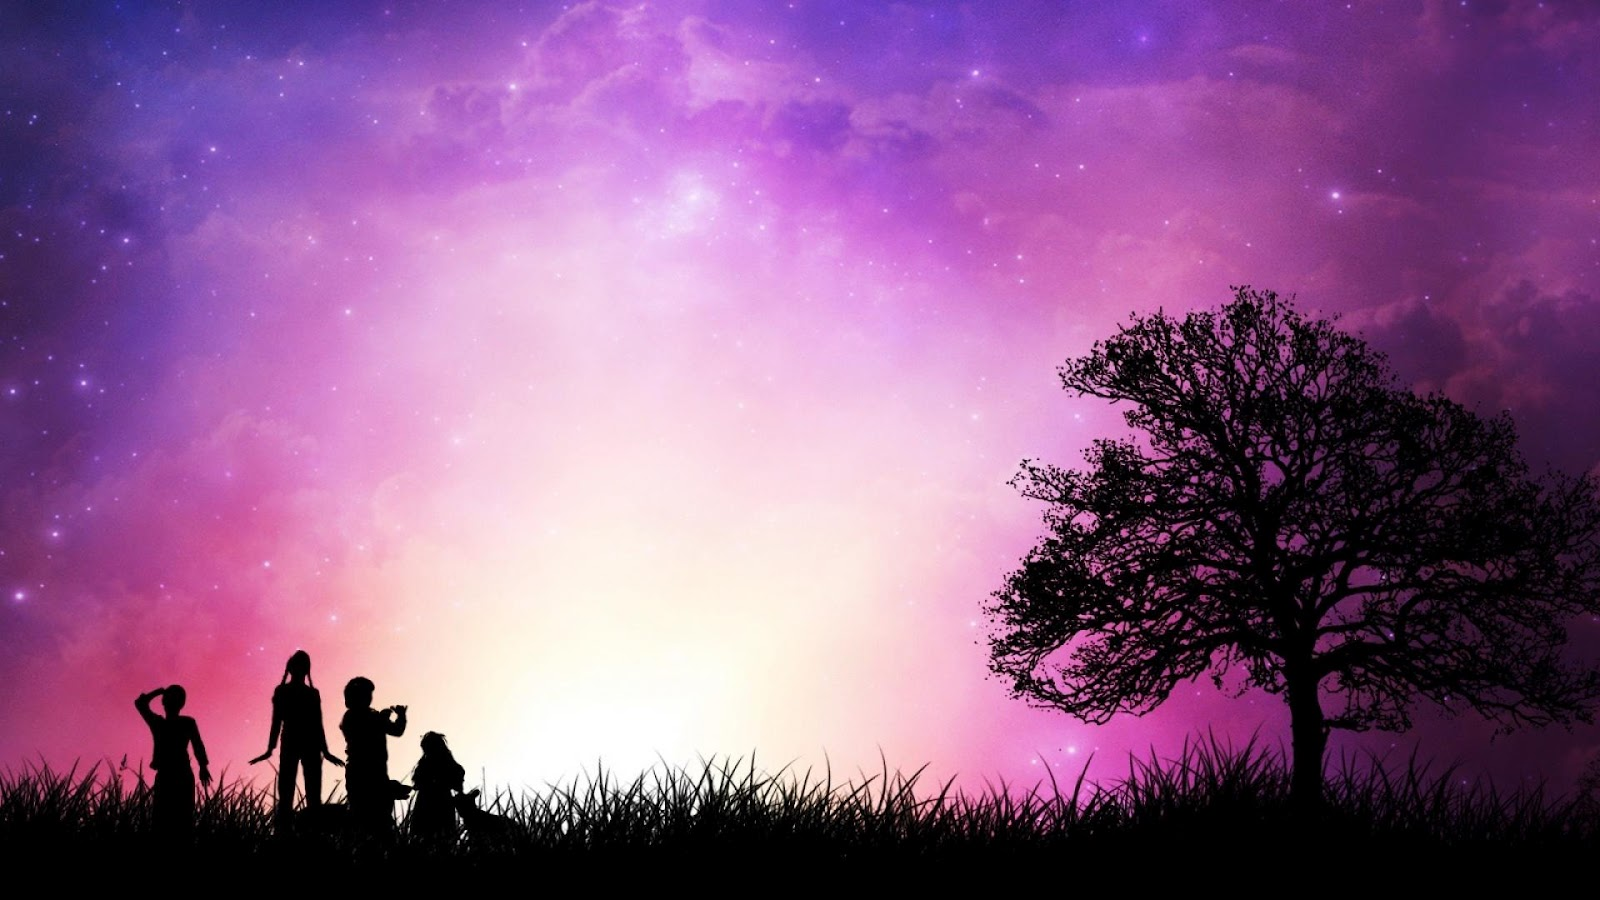 Love Wallpaper For Screen : Romantic Wallpapers HD Pictures HD Wallpapers ...